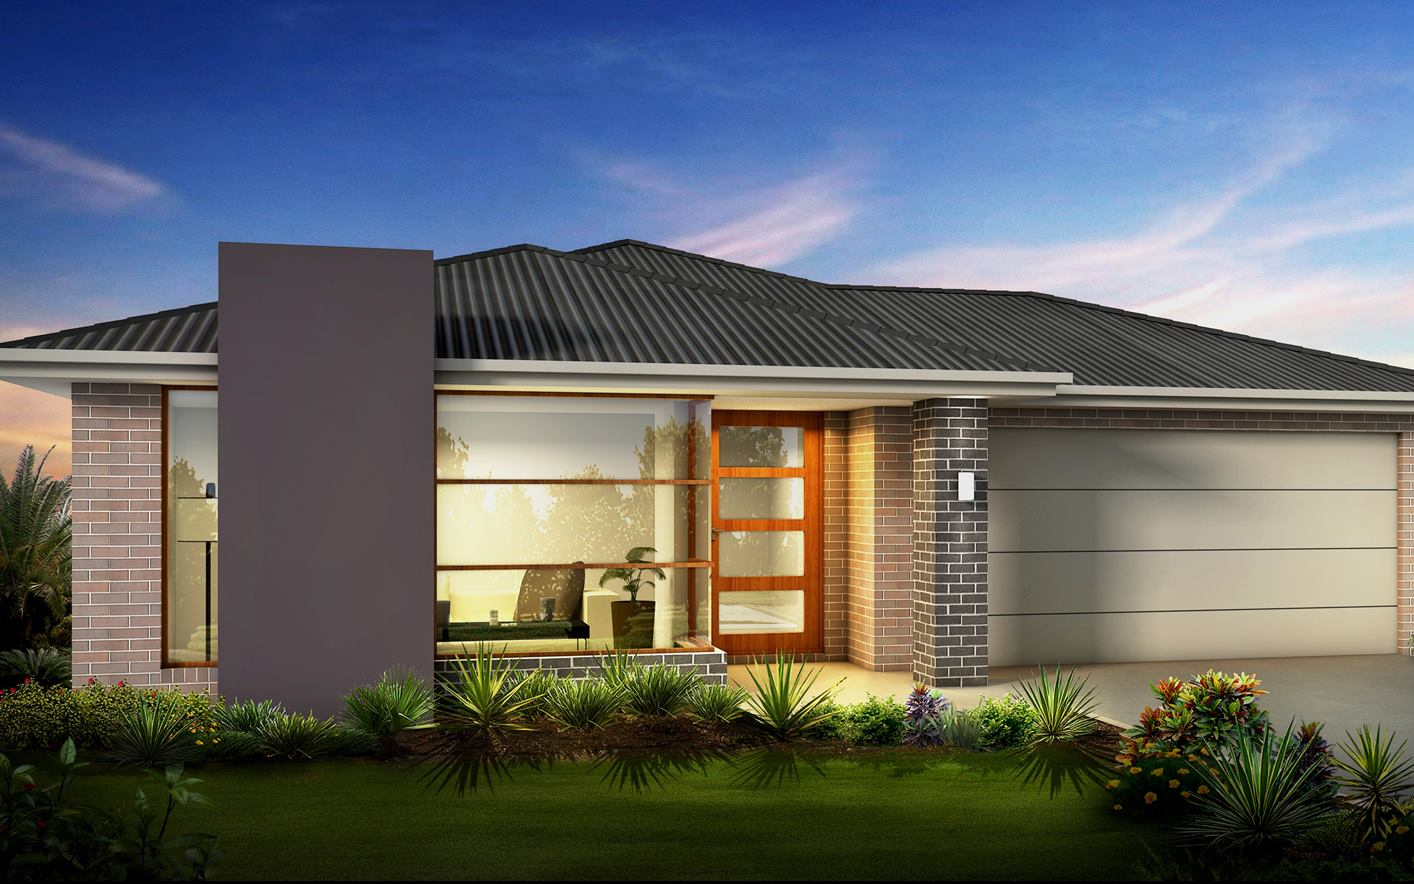 Metford 28 Home Design with Trend Facade